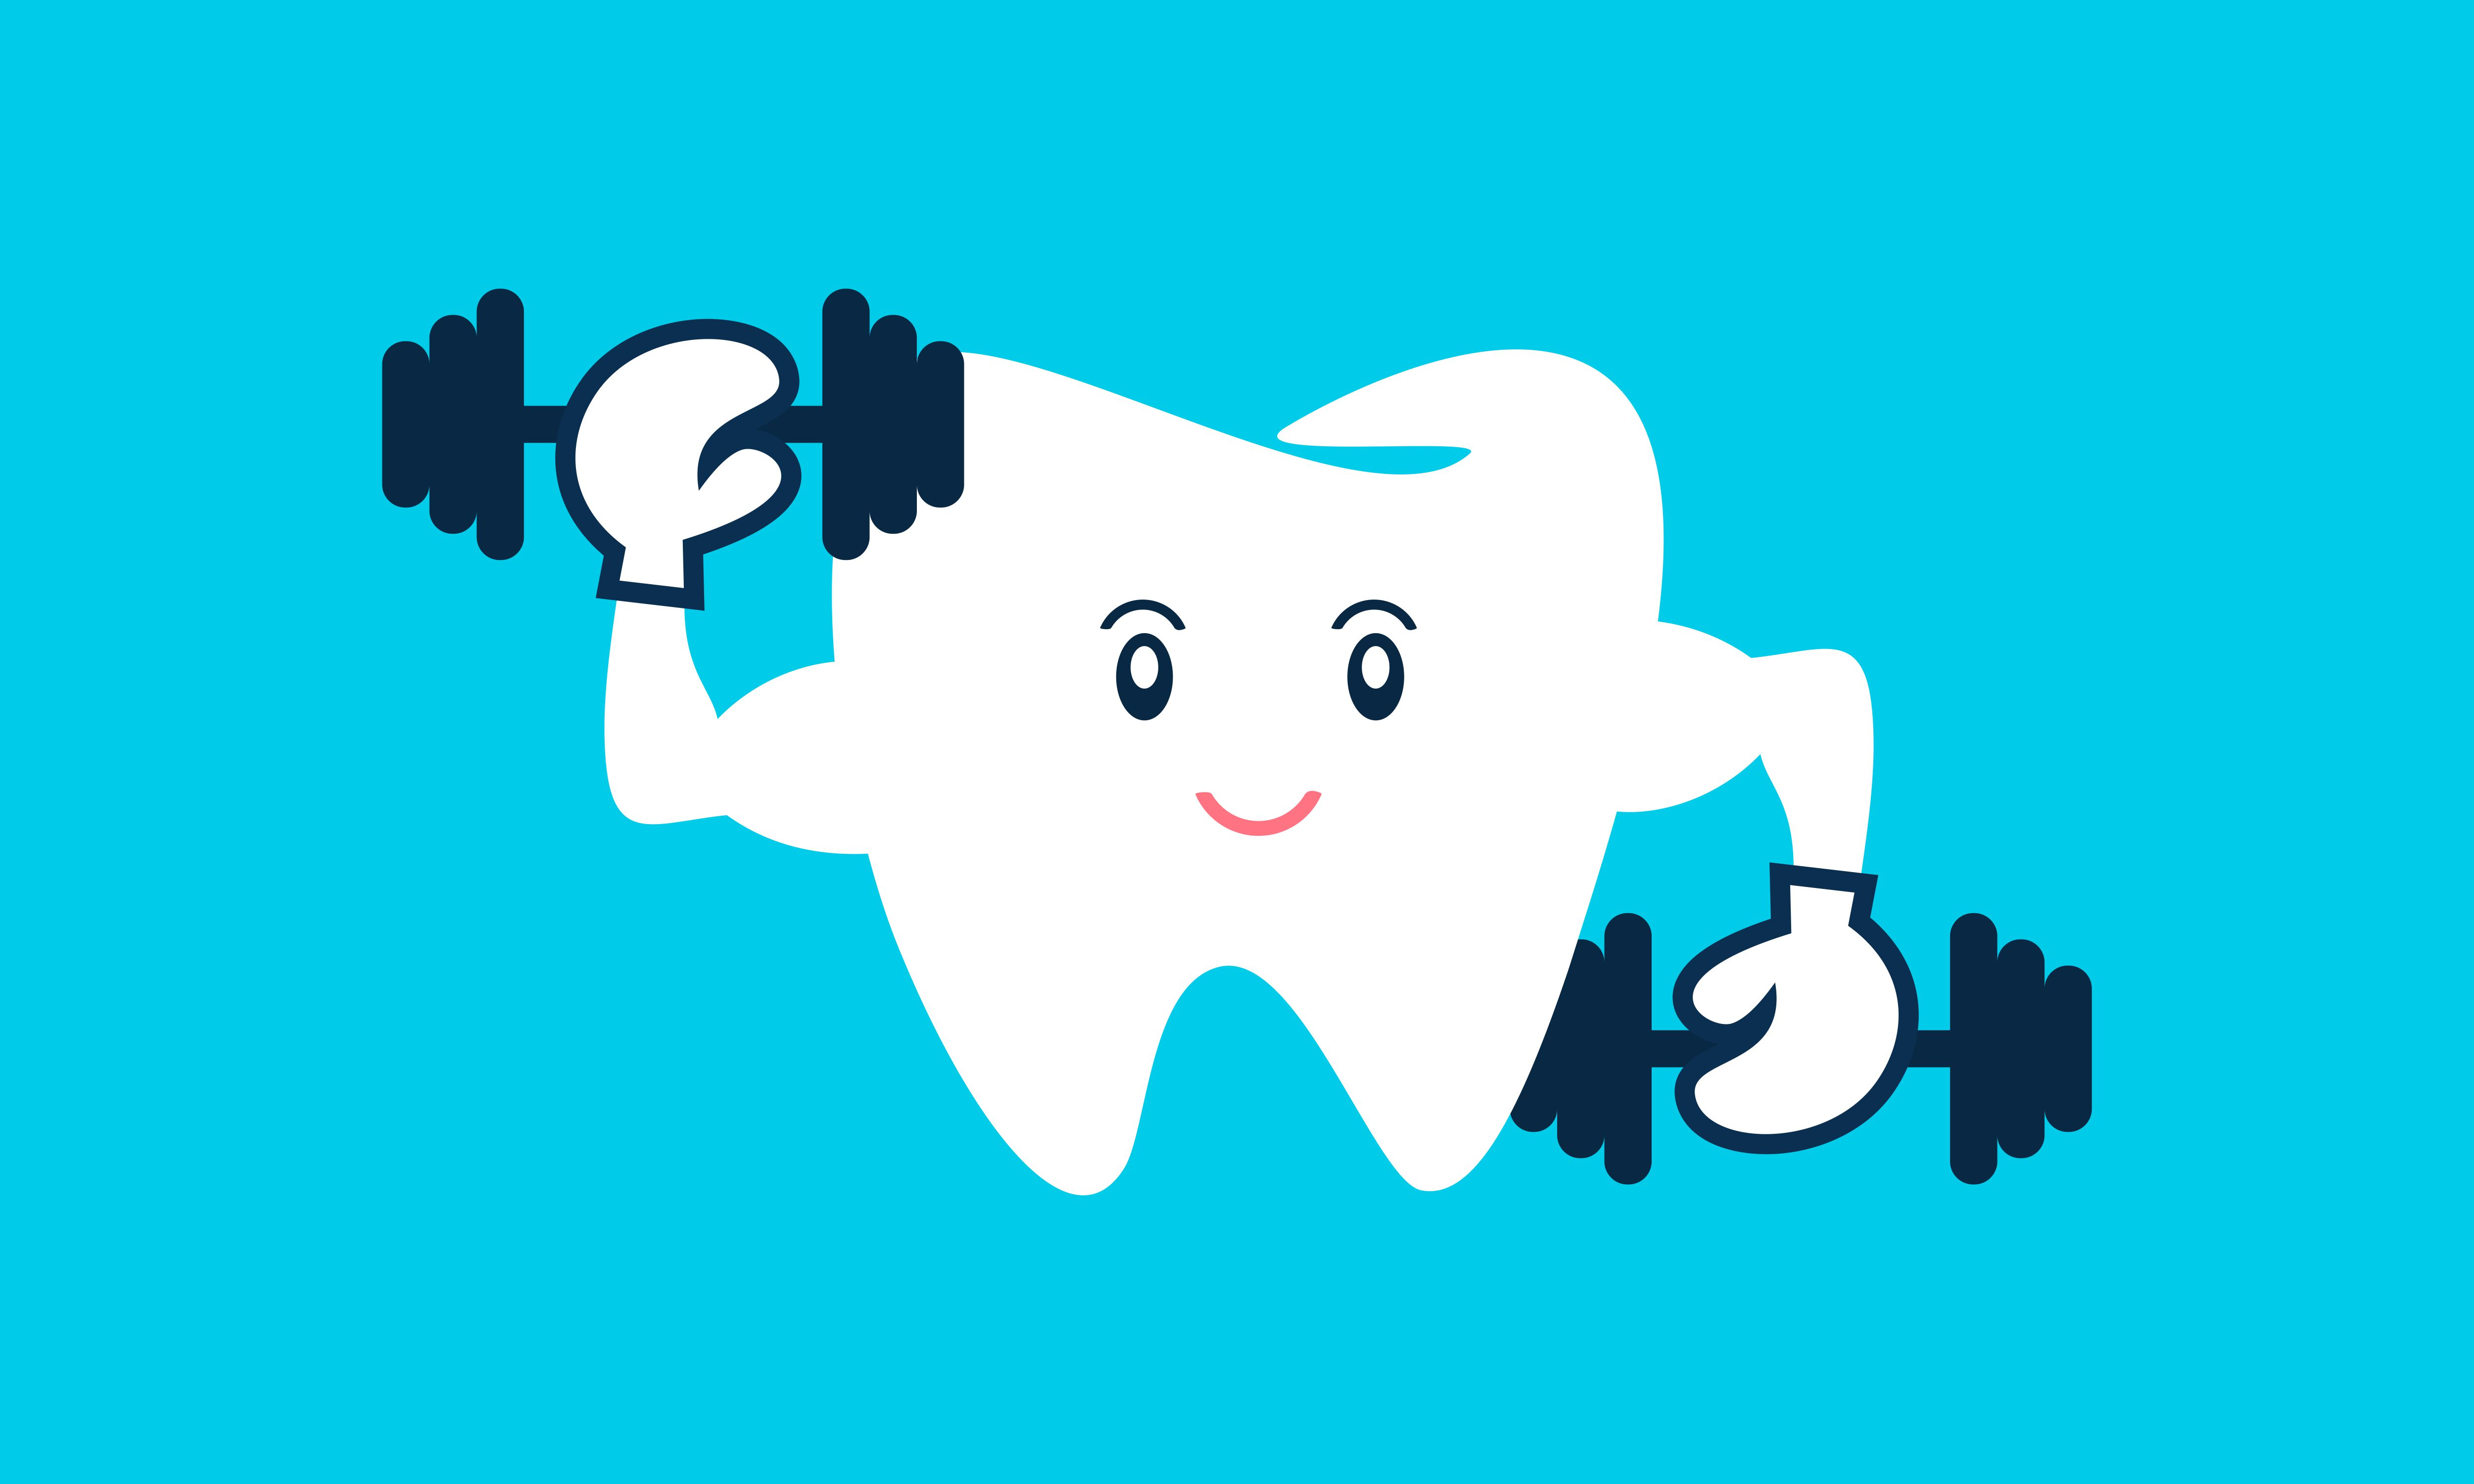 Download Free Dental Mascot Tooth Mascot Dental Logo Graphic By 2qnah for Cricut Explore, Silhouette and other cutting machines.